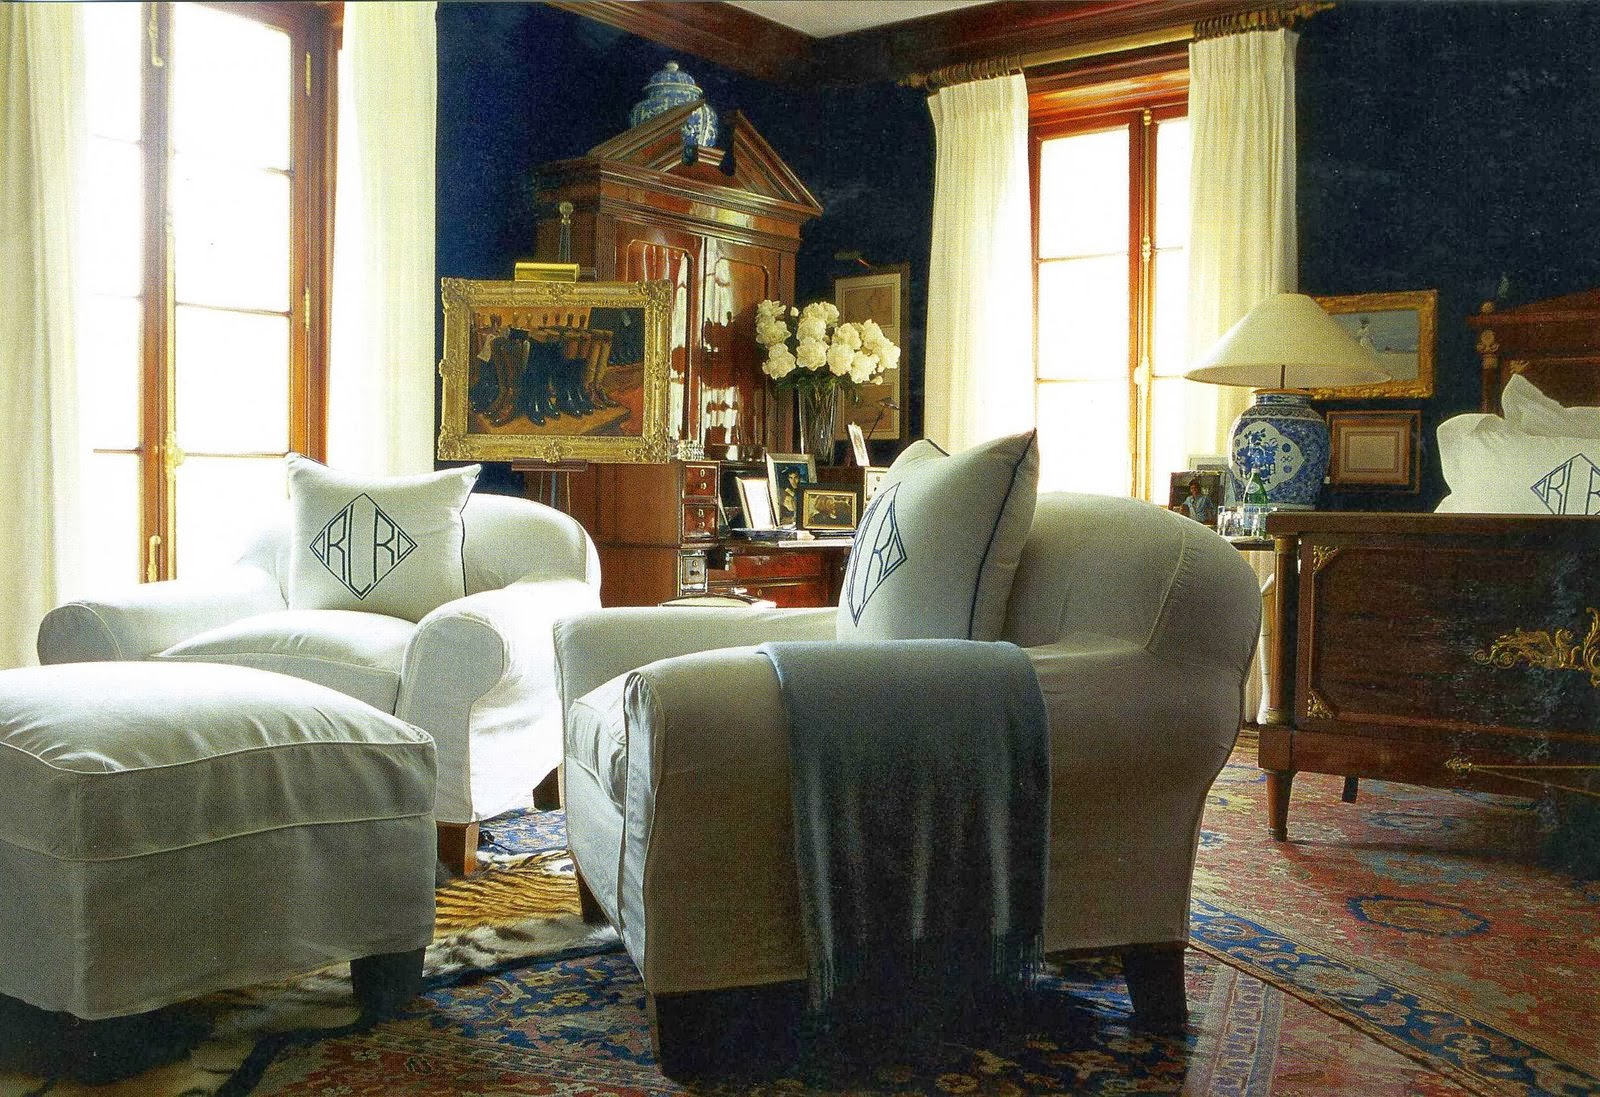 Decor inspiration at home with ralph lauren new york for Home decor new york